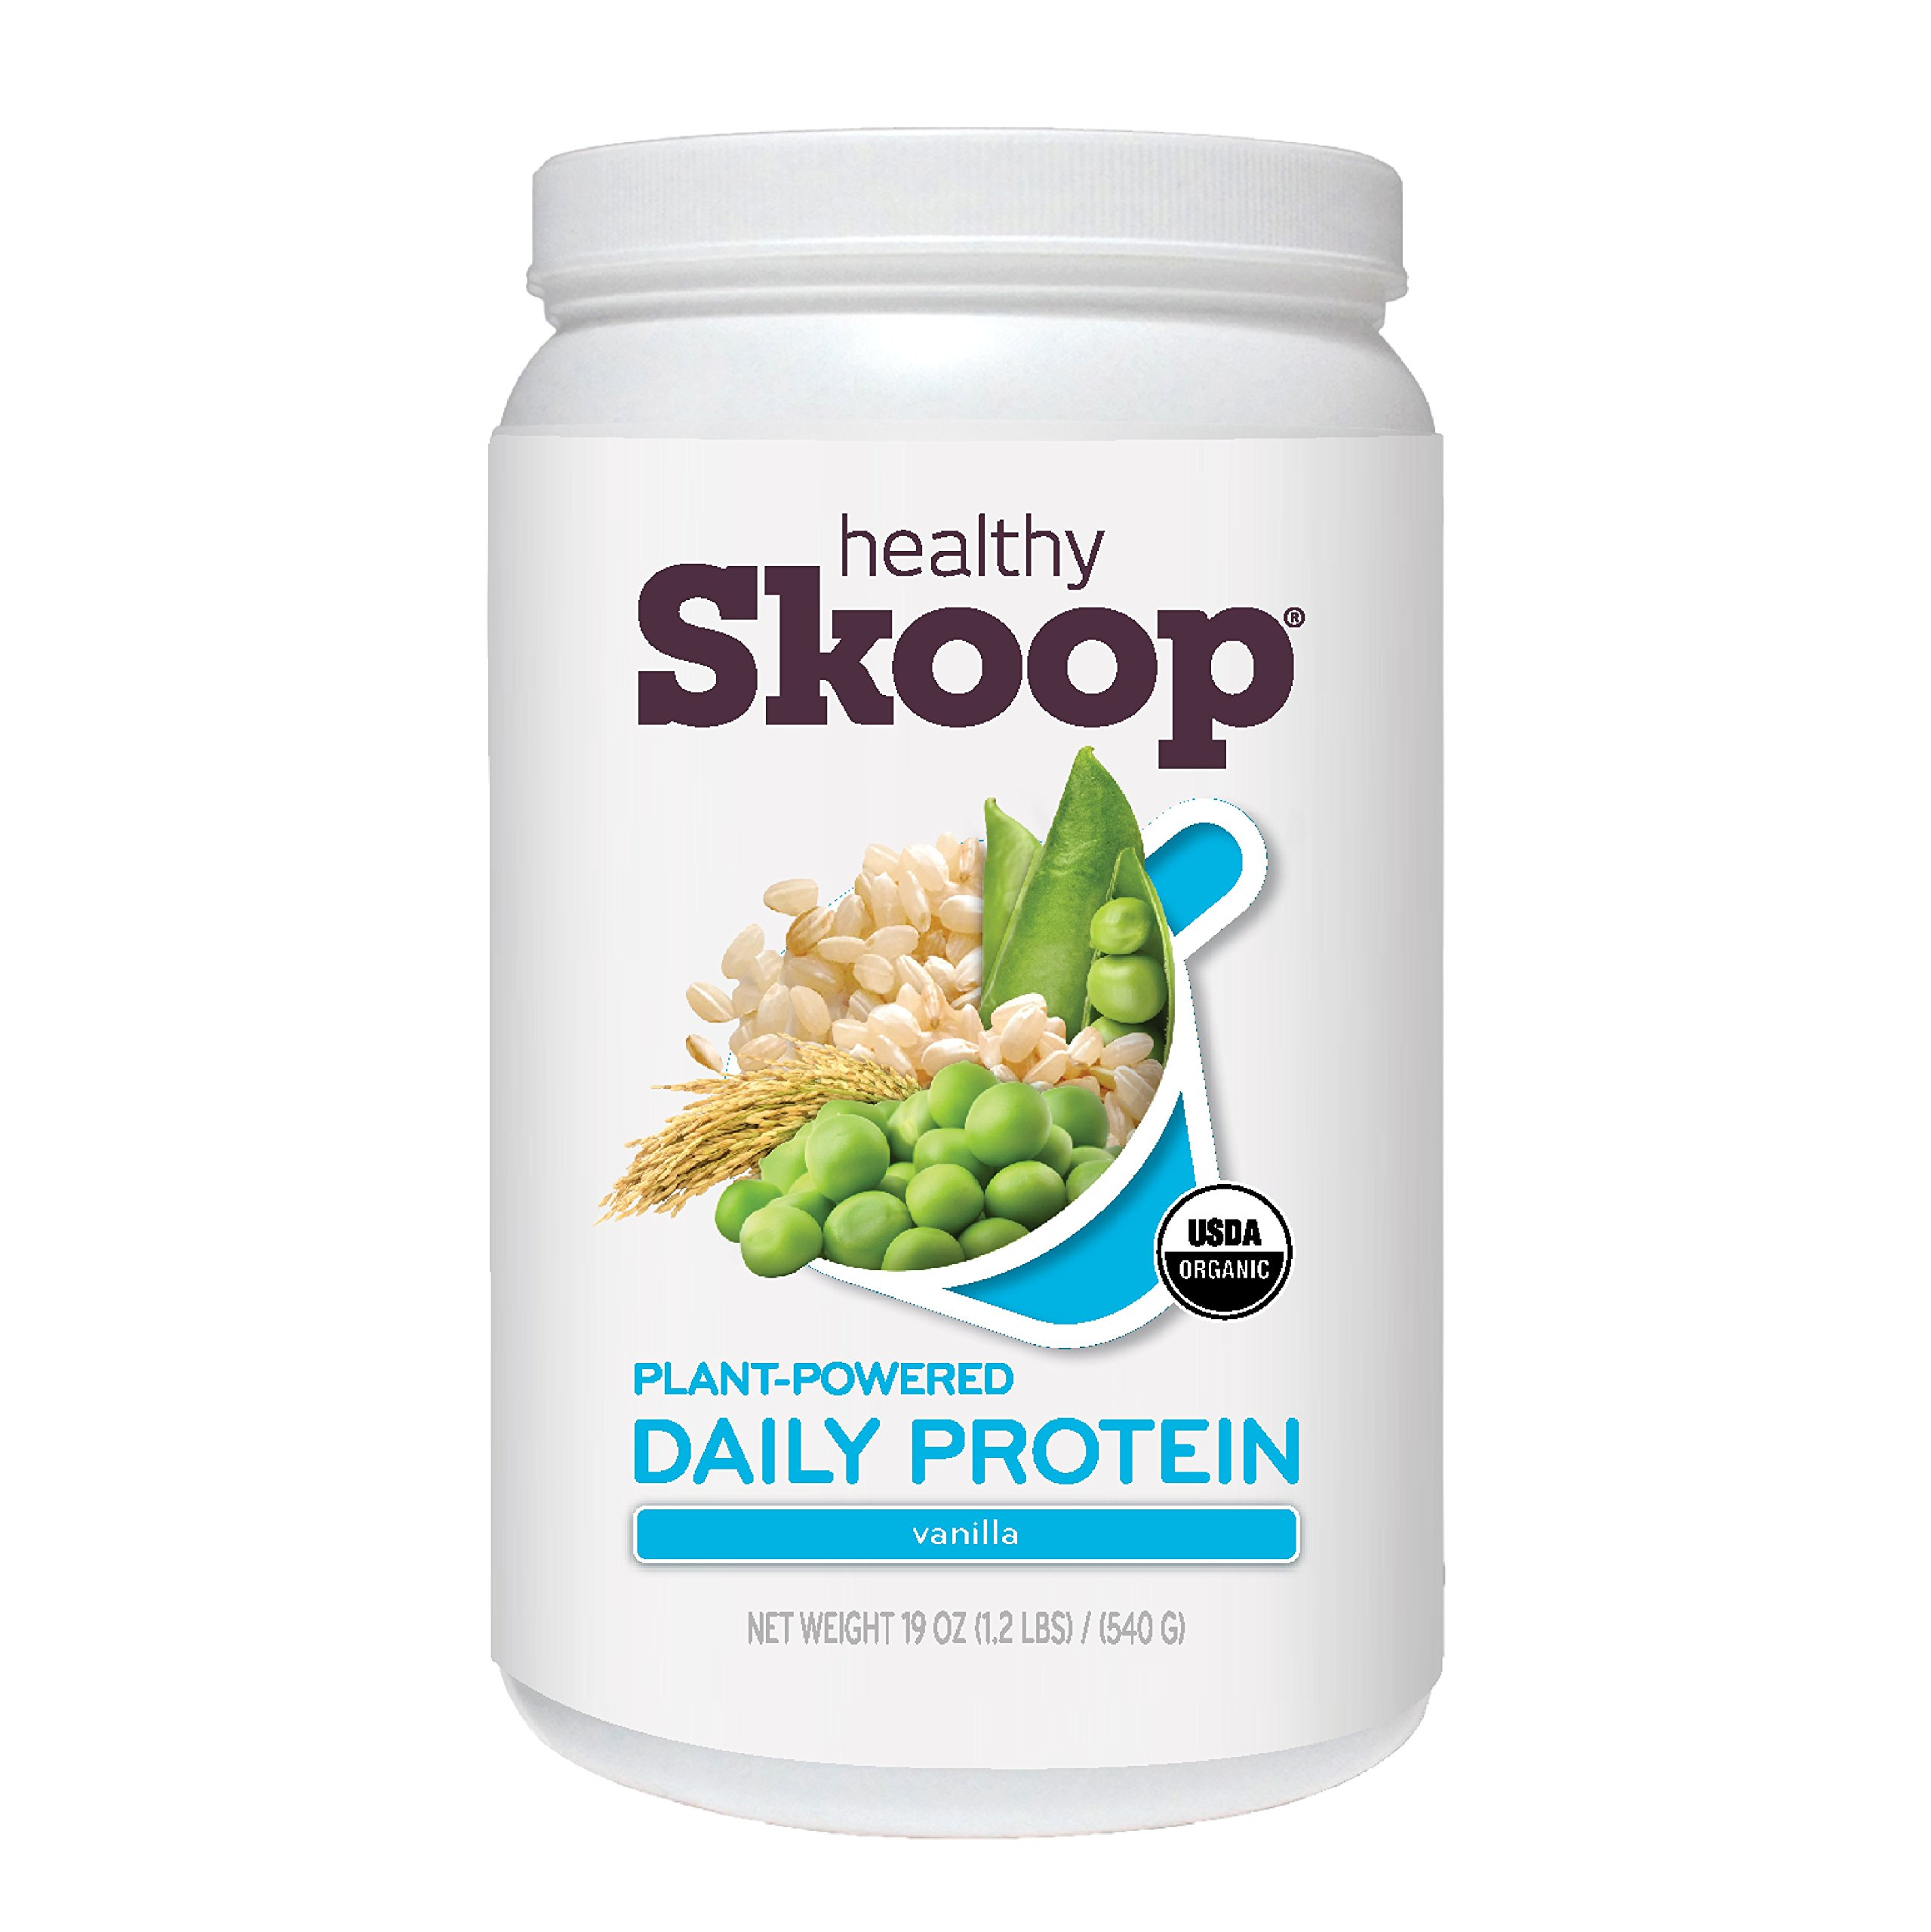 Healthy Skoop Organic, Plant-Powered Daily Protein, Vanilla 19 Ounce